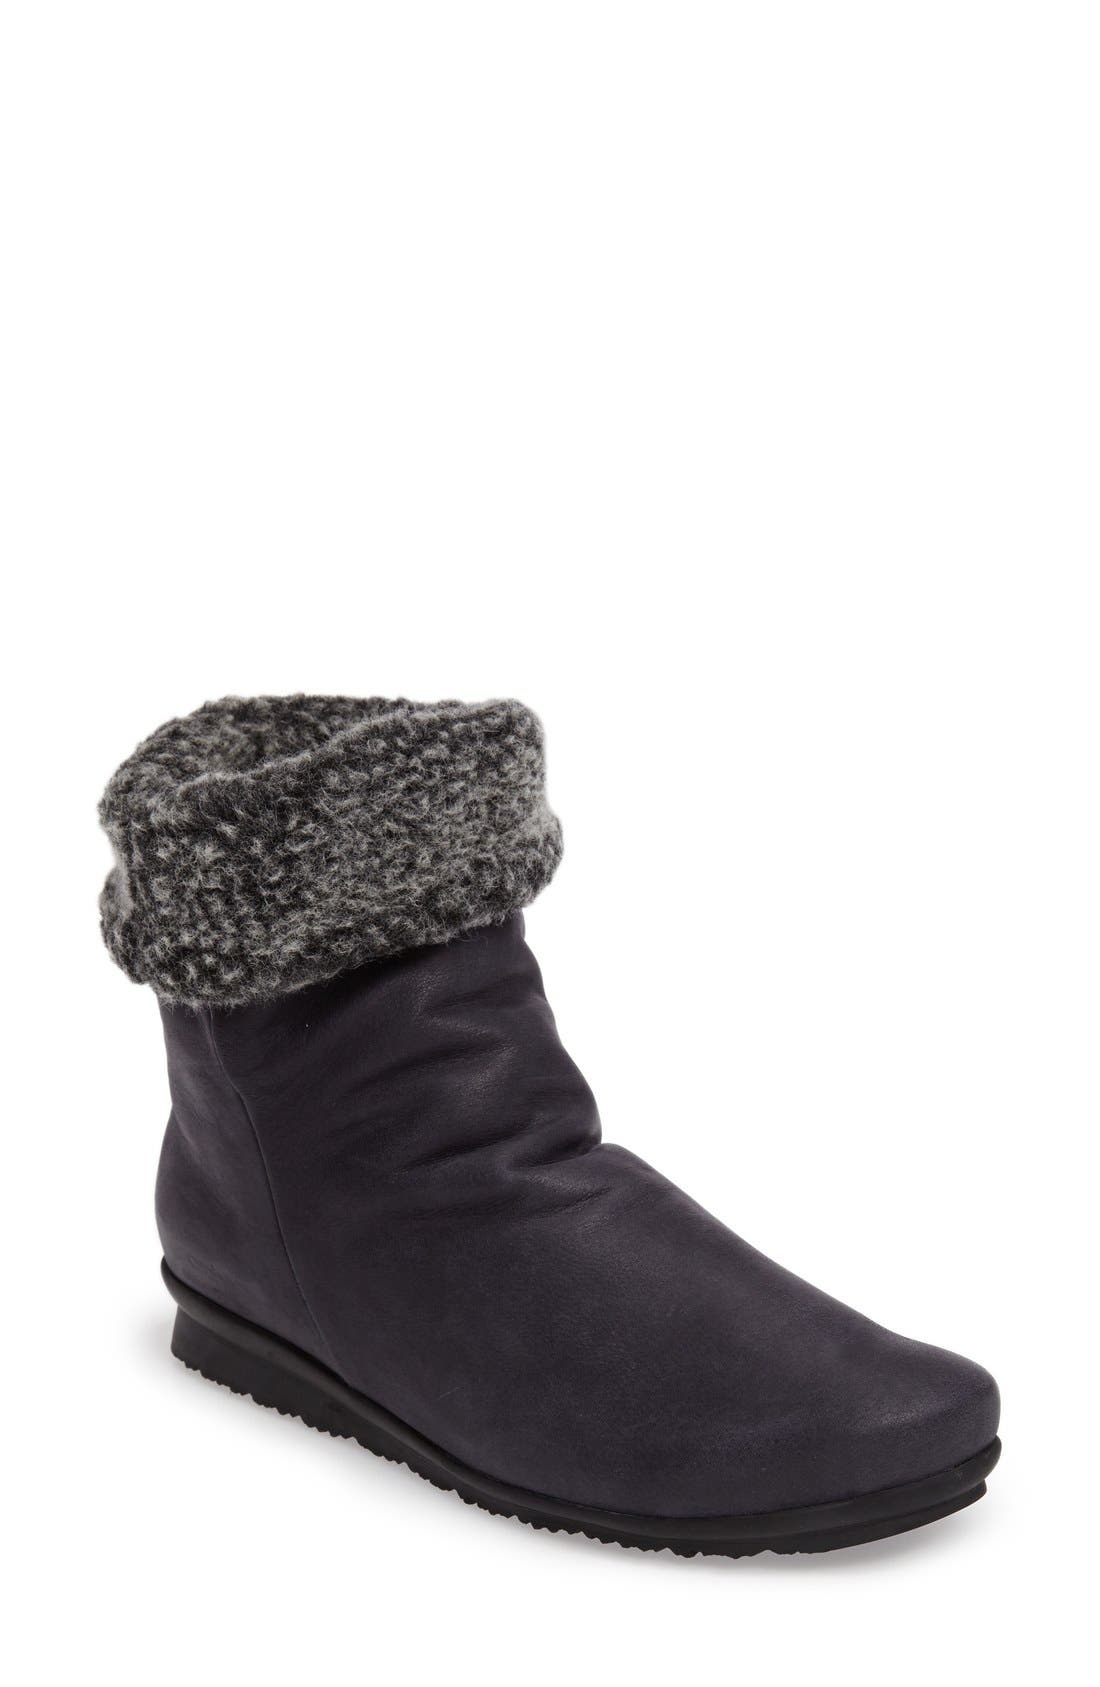 Barosa Faux Shearling Cuffed Bootie,                             Main thumbnail 1, color,